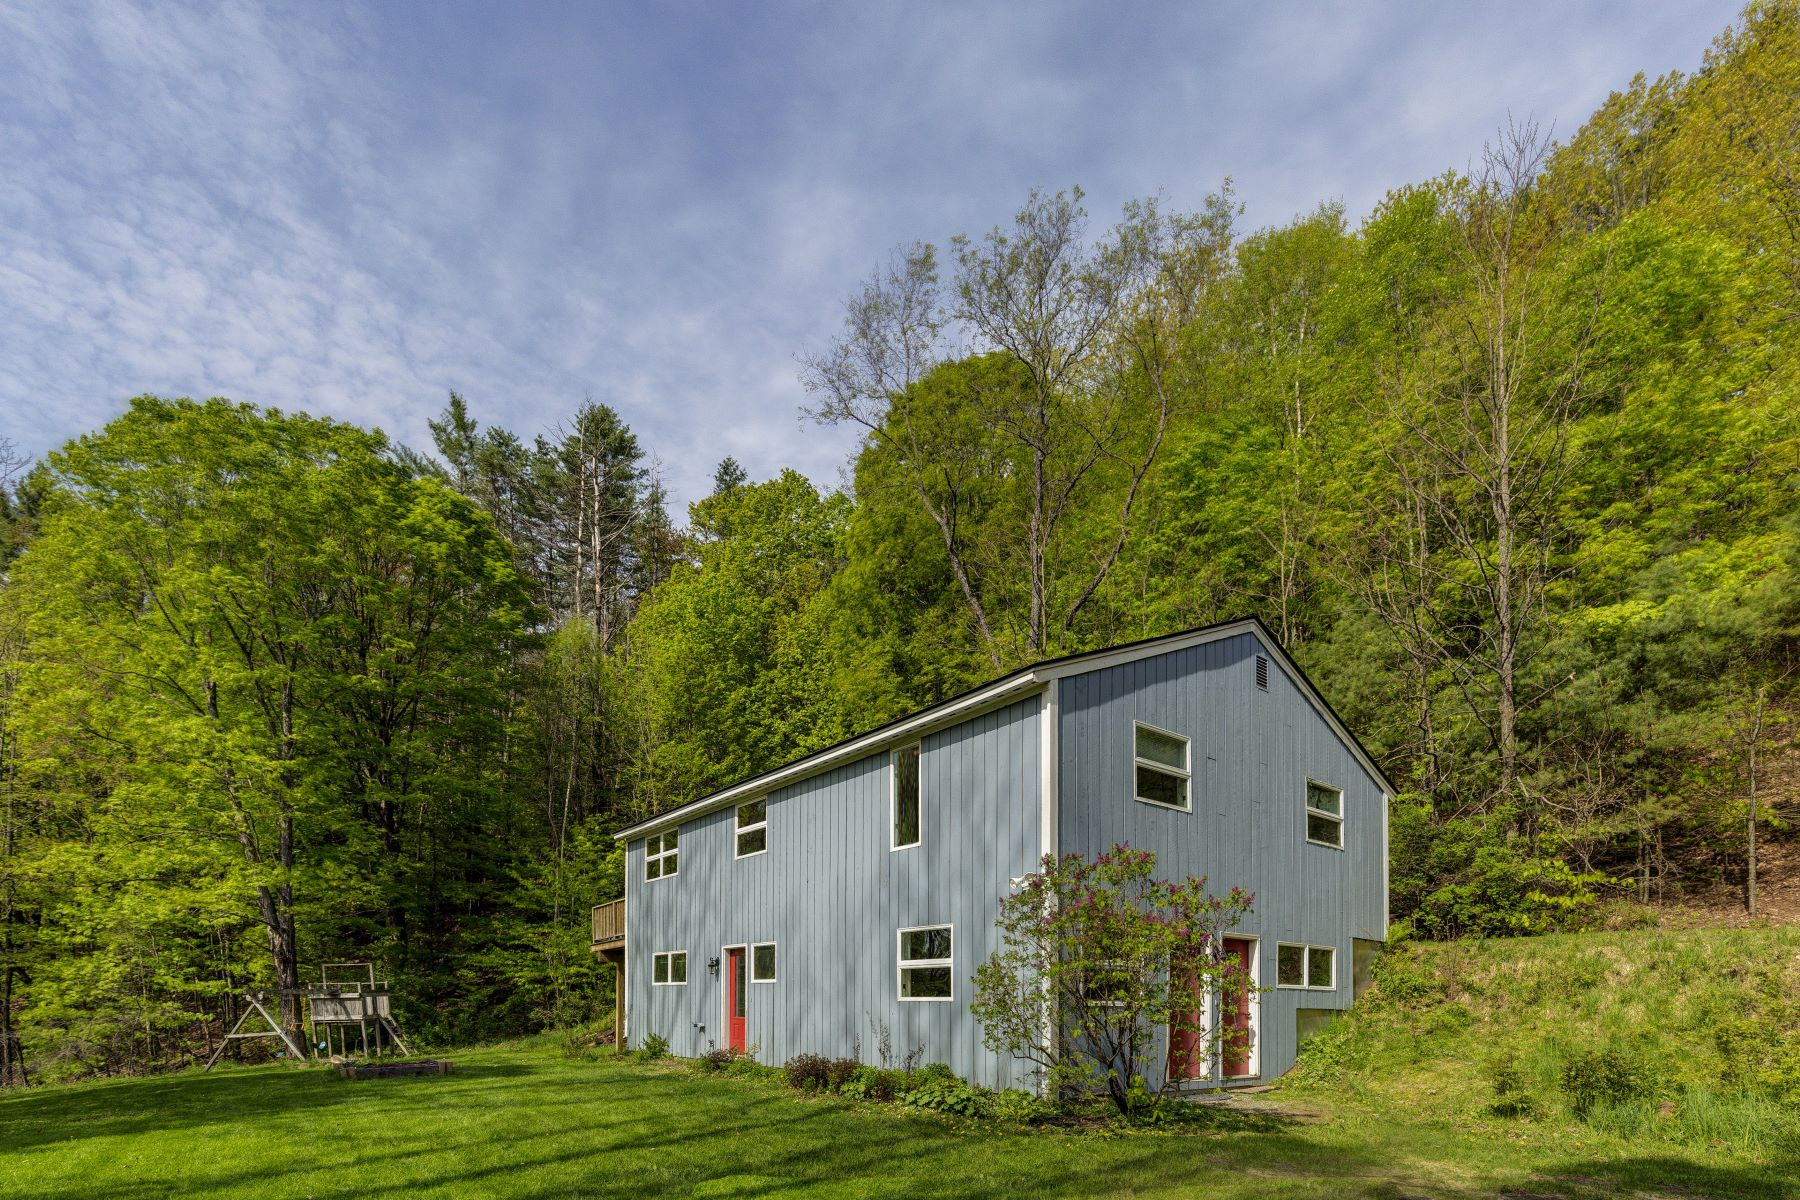 single family homes for Sale at 961 New Boston Road, Norwich 961 New Boston Rd Norwich, Vermont 05055 United States